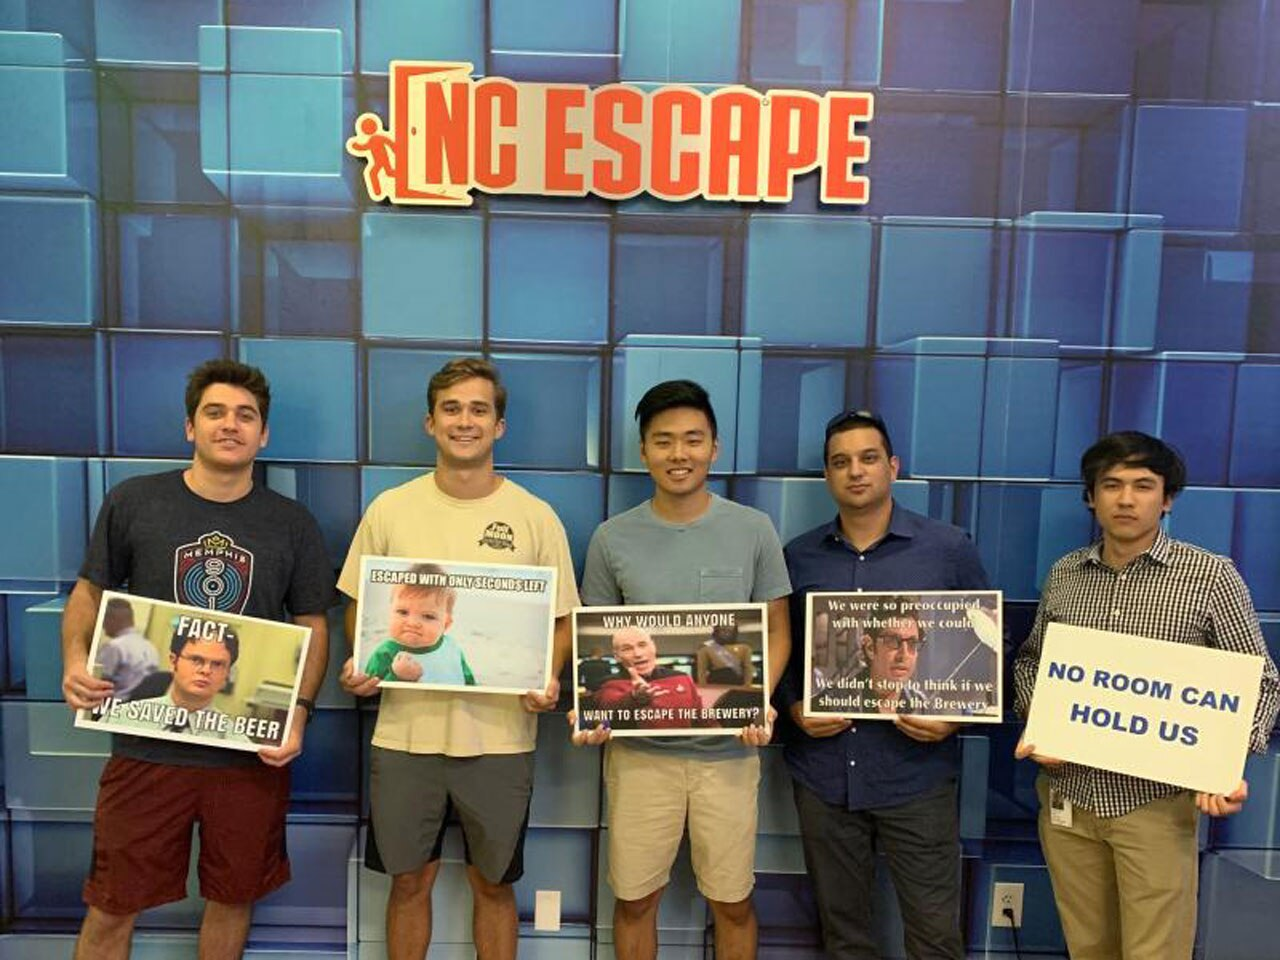 Avaya team members at an escape room working on team building